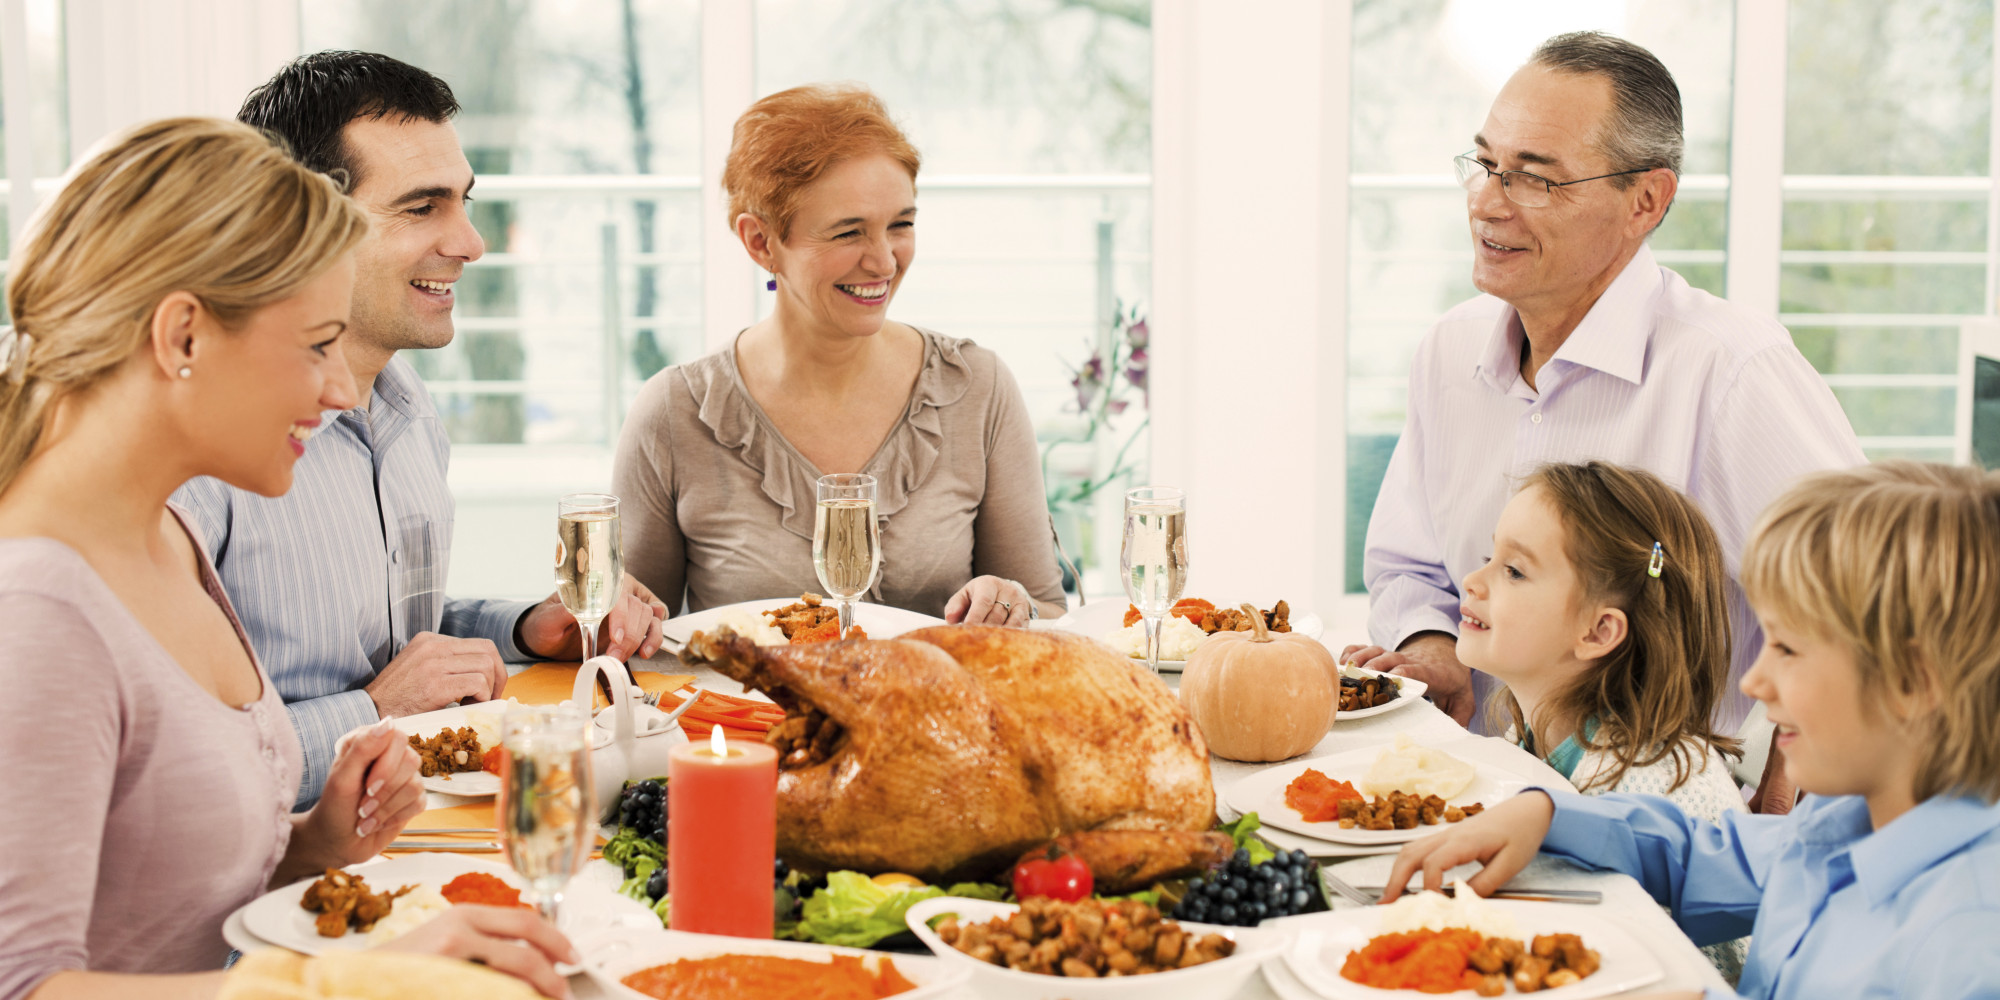 91% of Americans eat turkey on Thanksgiving day